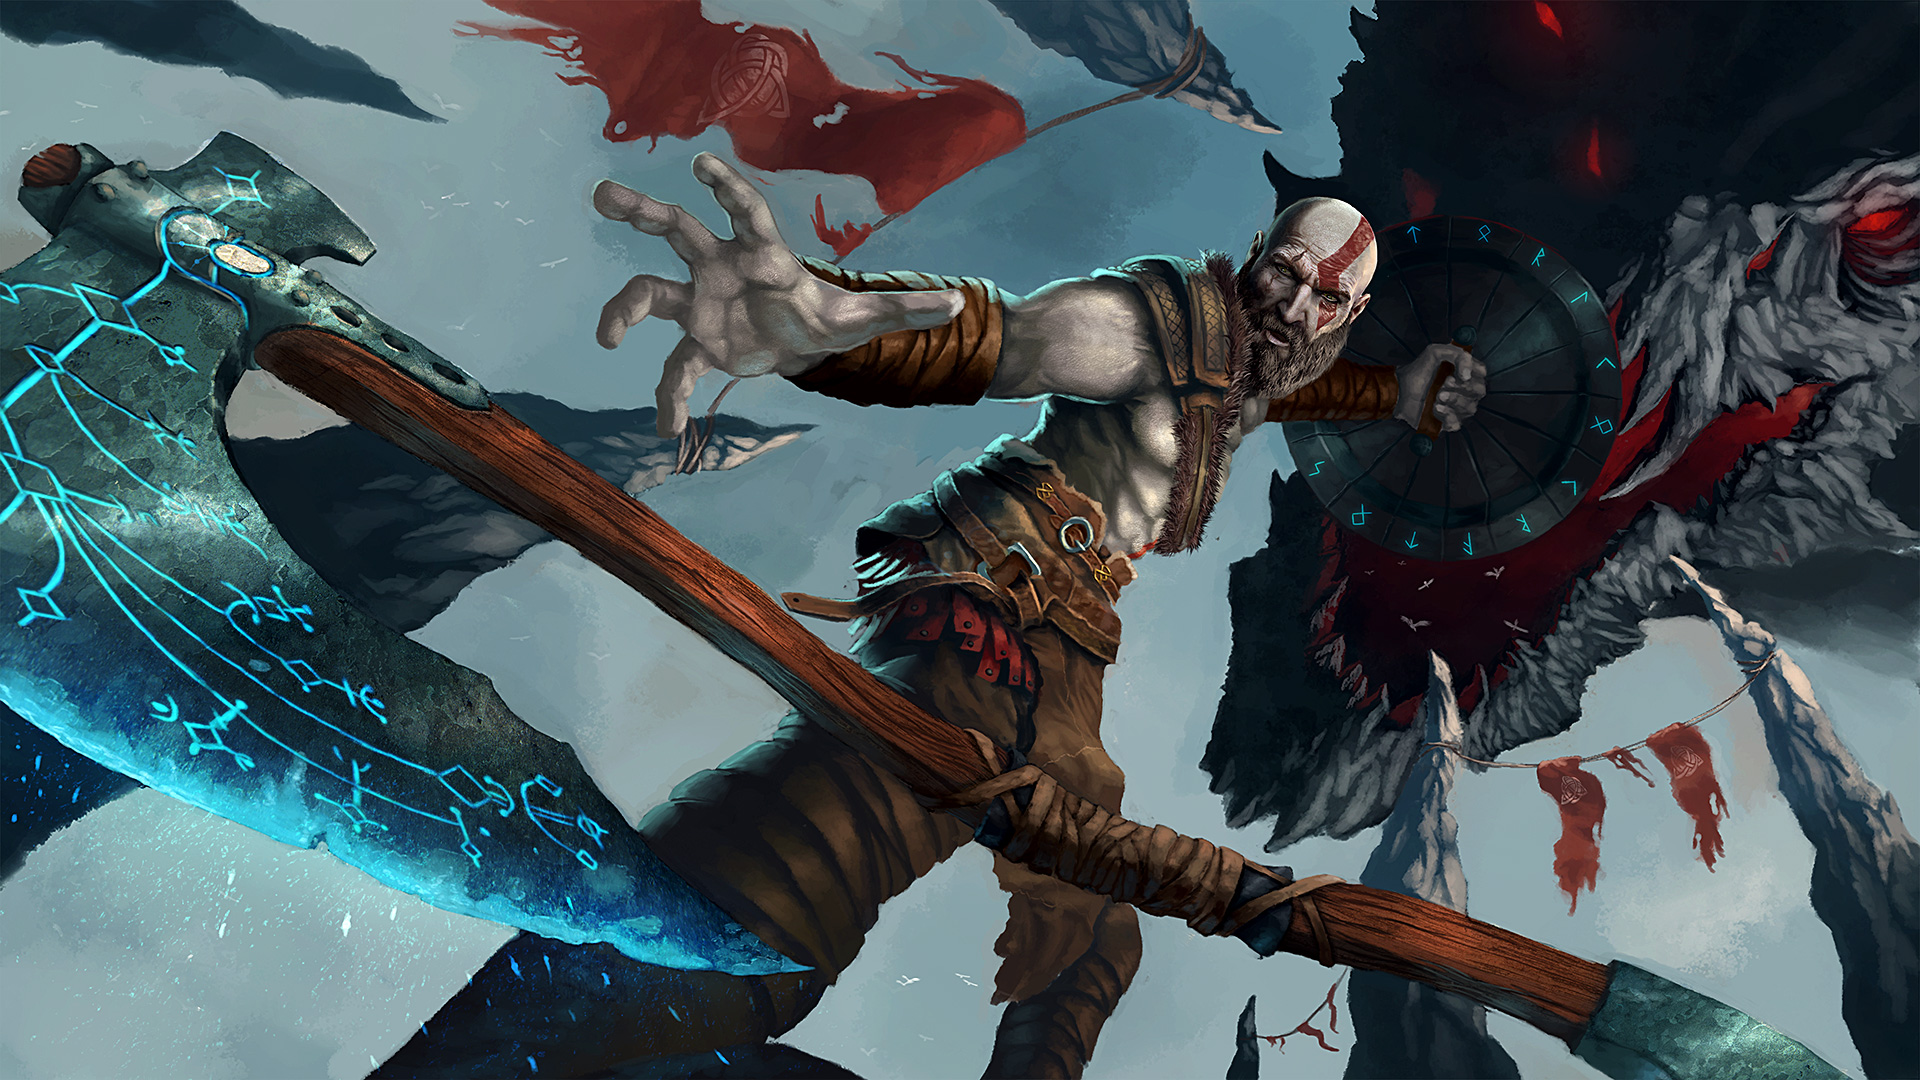 God Of War 4 Artwork Hd Games 4k Wallpapers Images